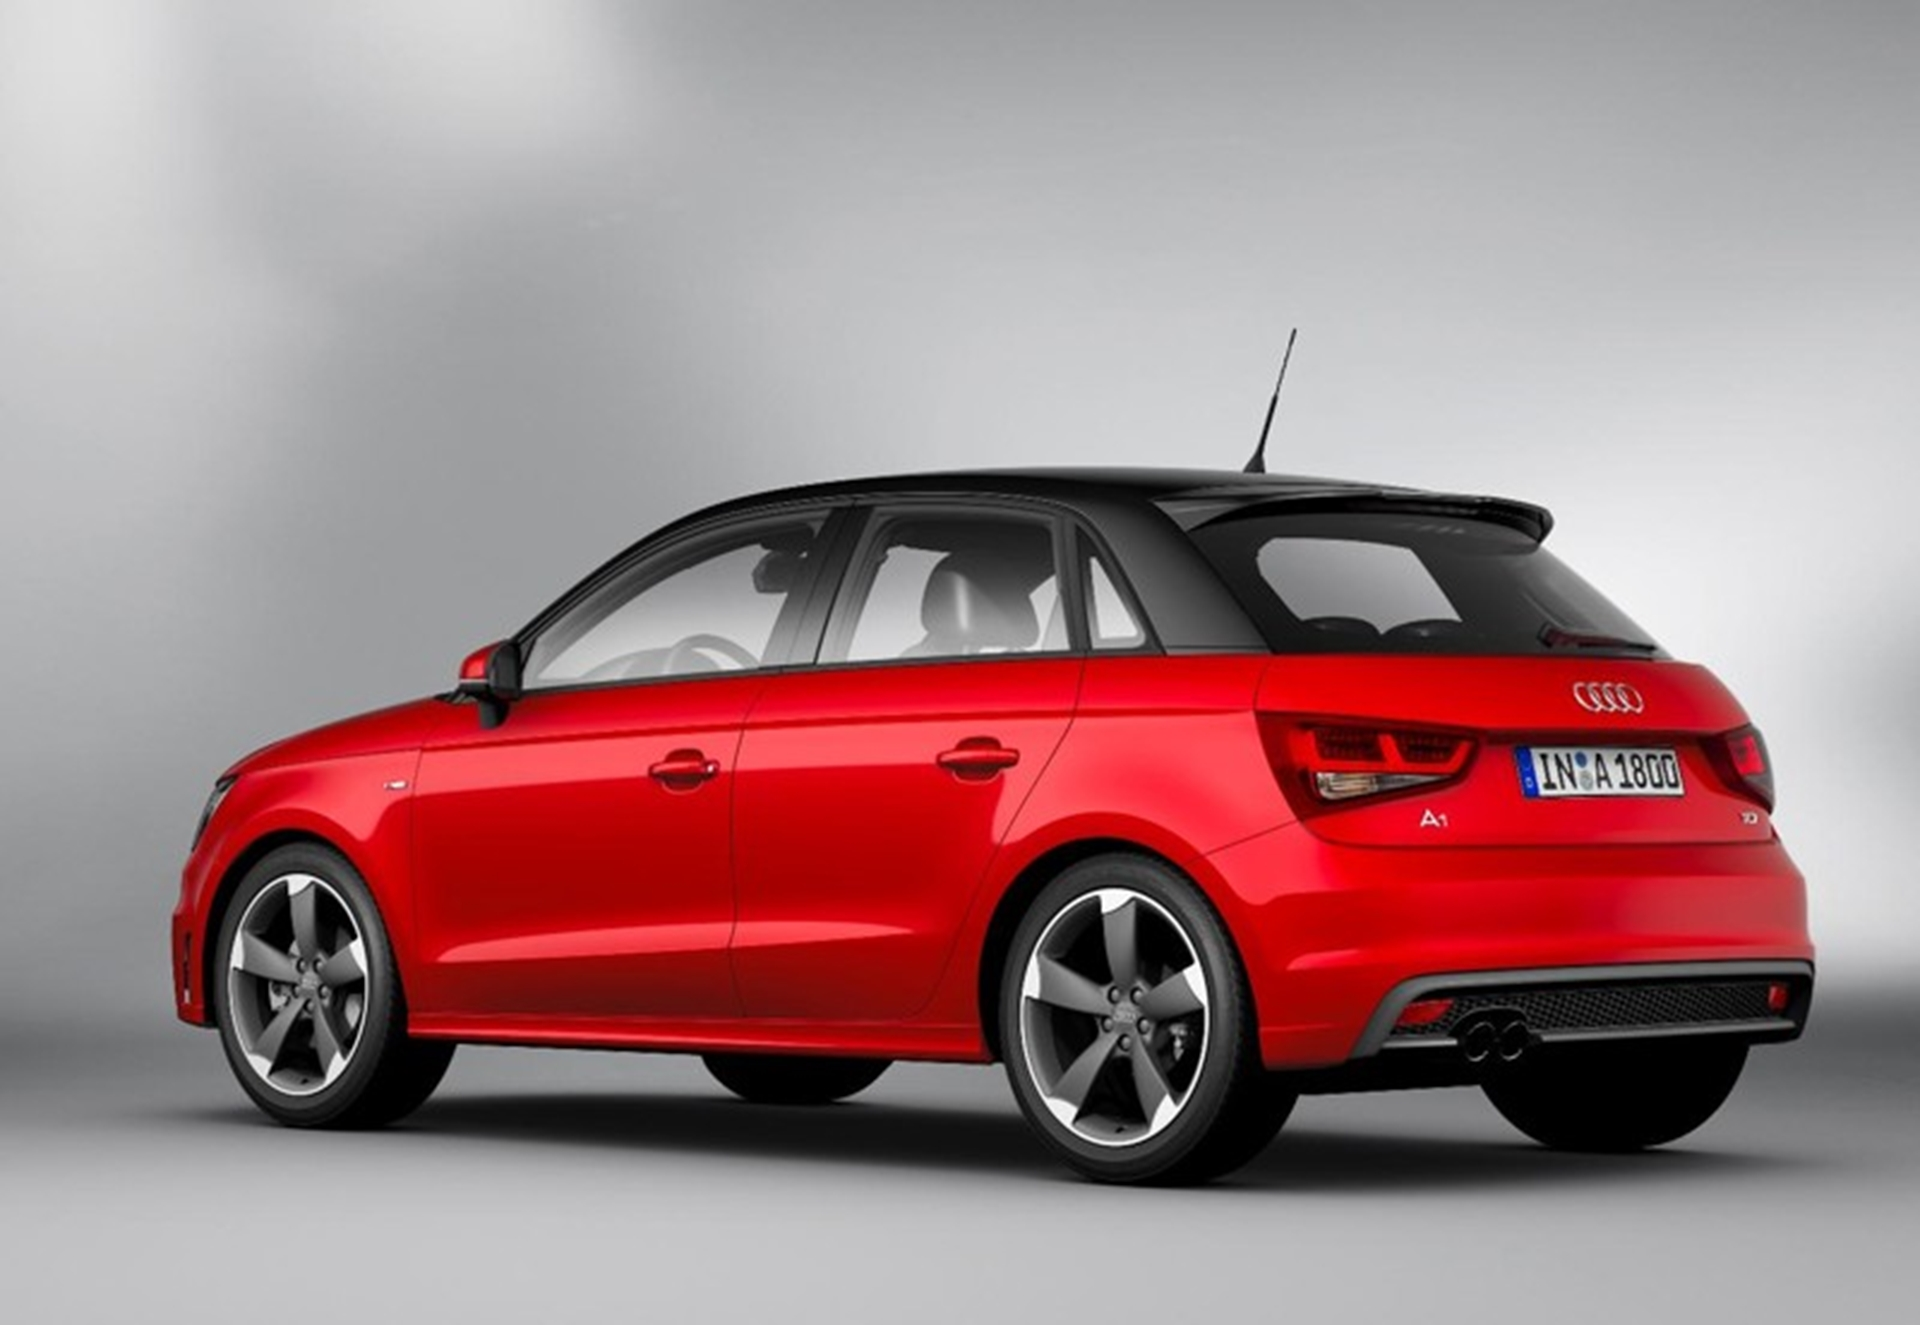 New Audi A1 Sportback 2012 Side View